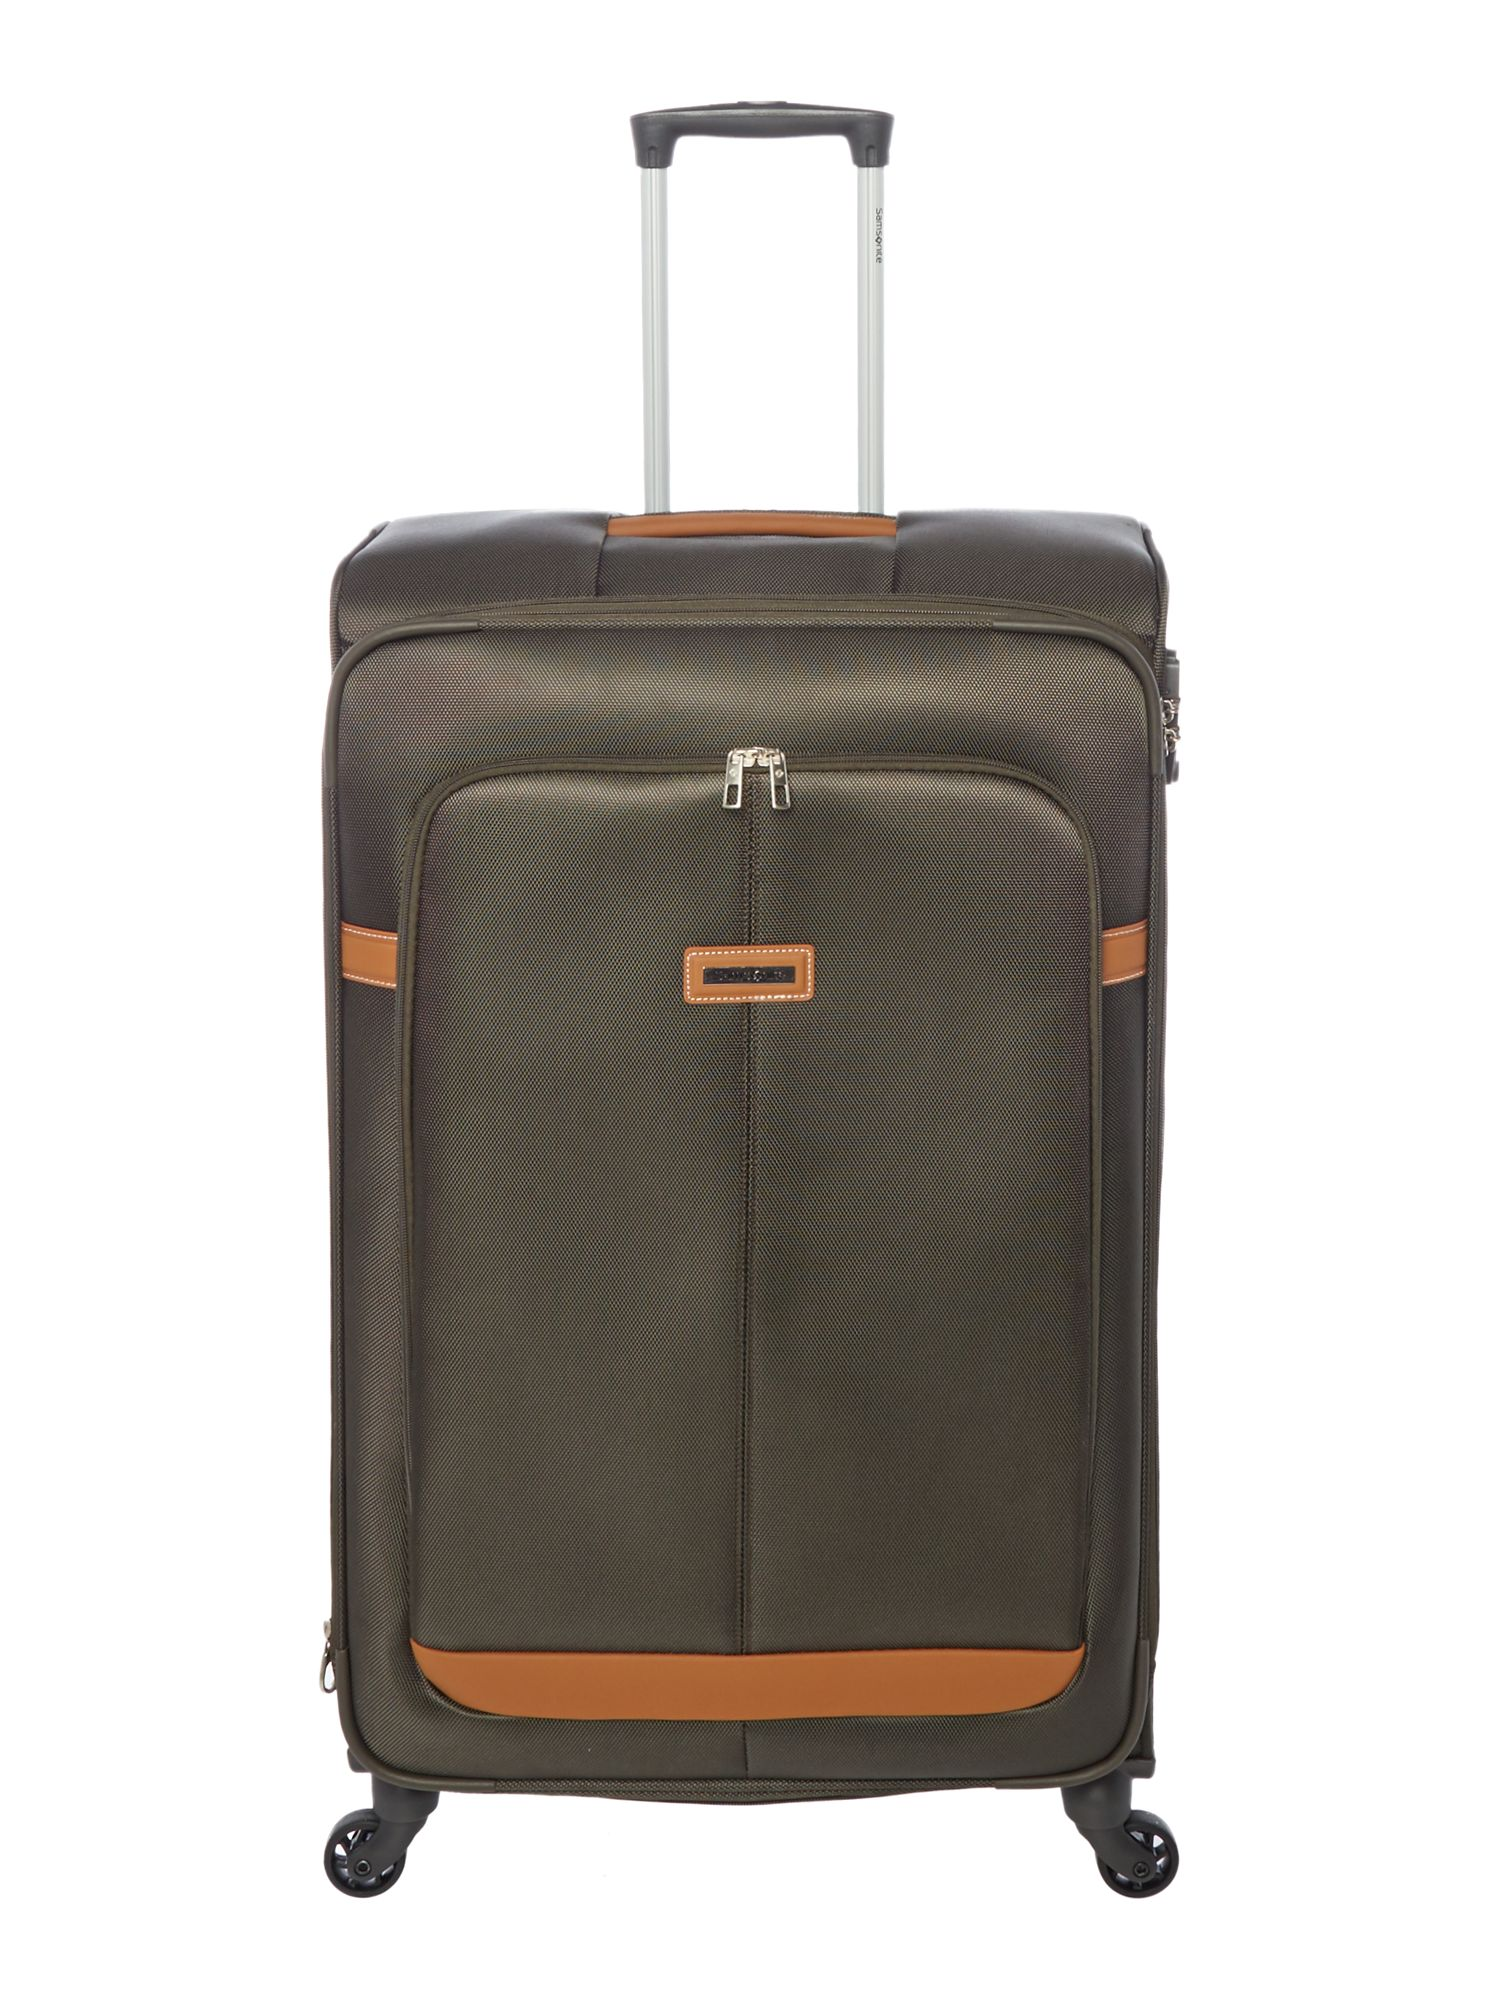 Samsonite Caphir Olive 4 Wheel Soft Large Suitcase - House of Fraser